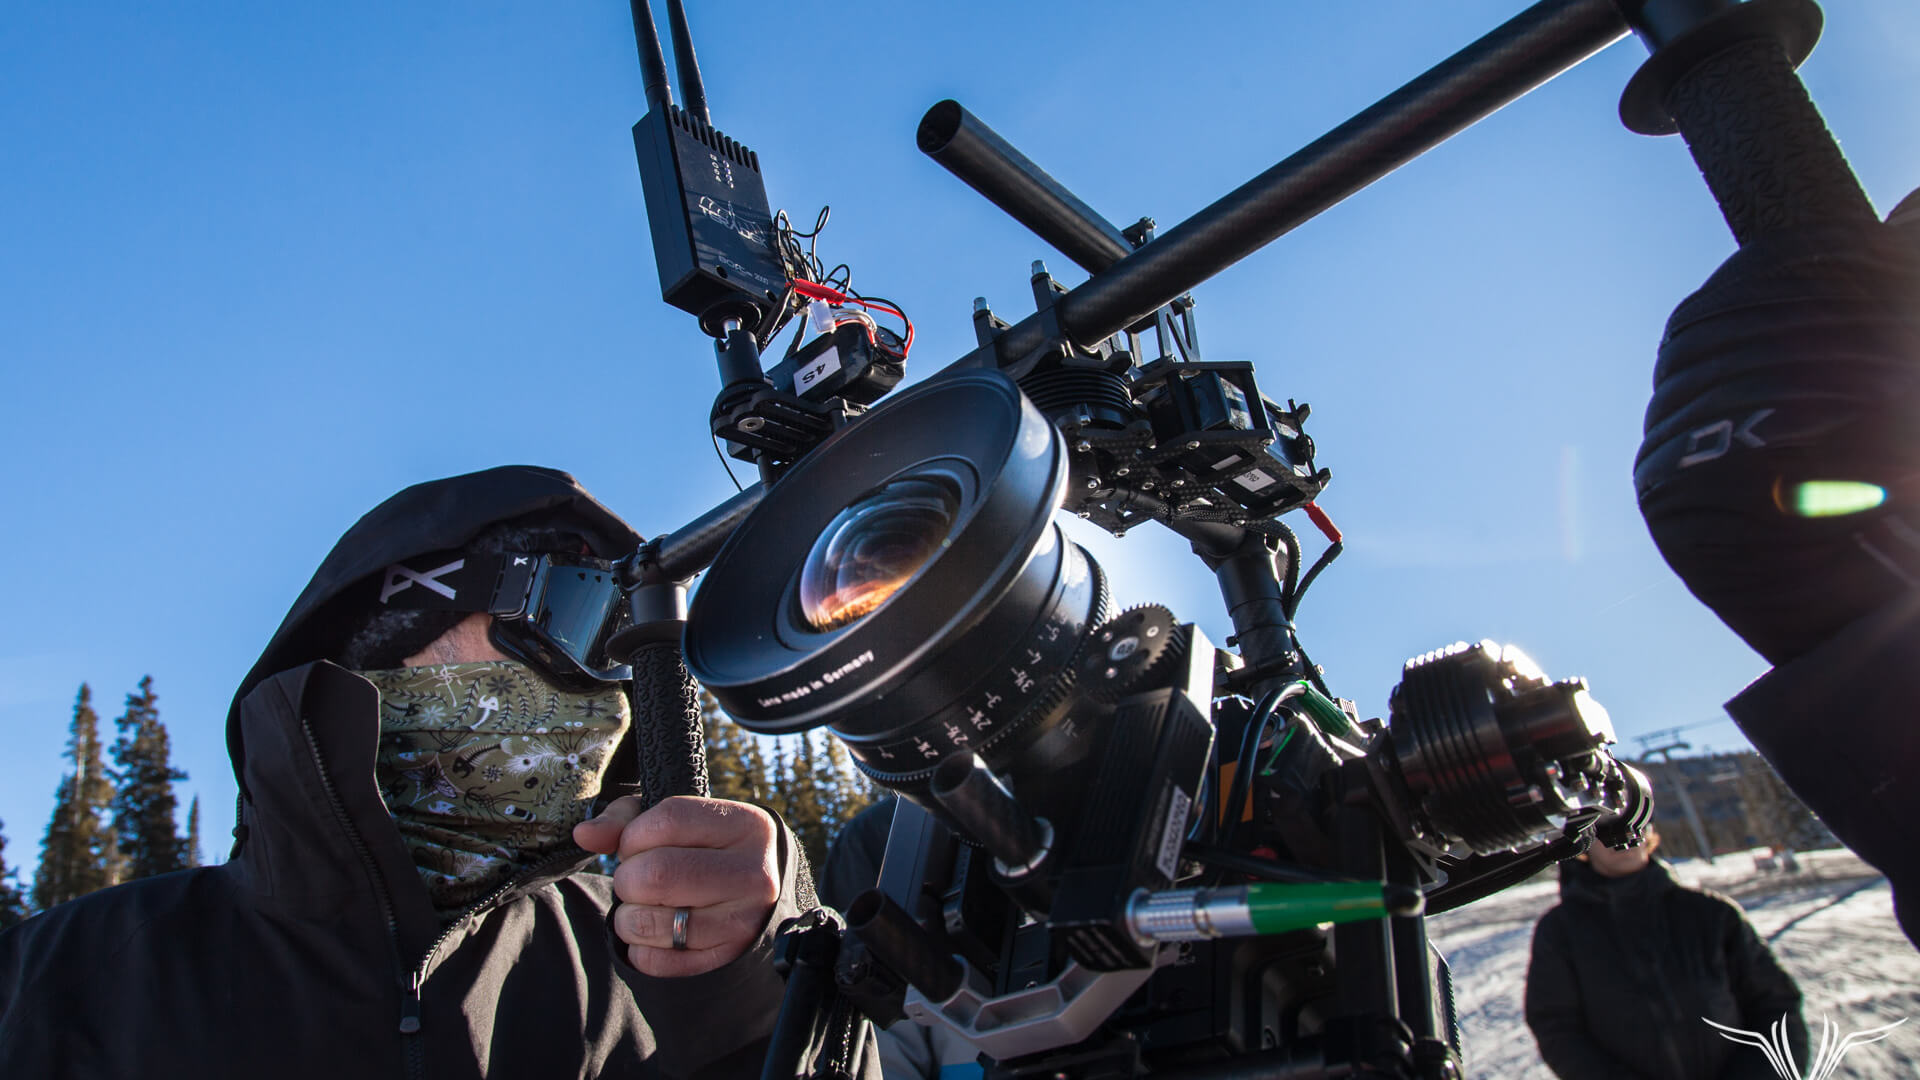 MoVI Operator Sam Nuttmann - Colorado - Red Bull Moments - Zeiss 8R lens